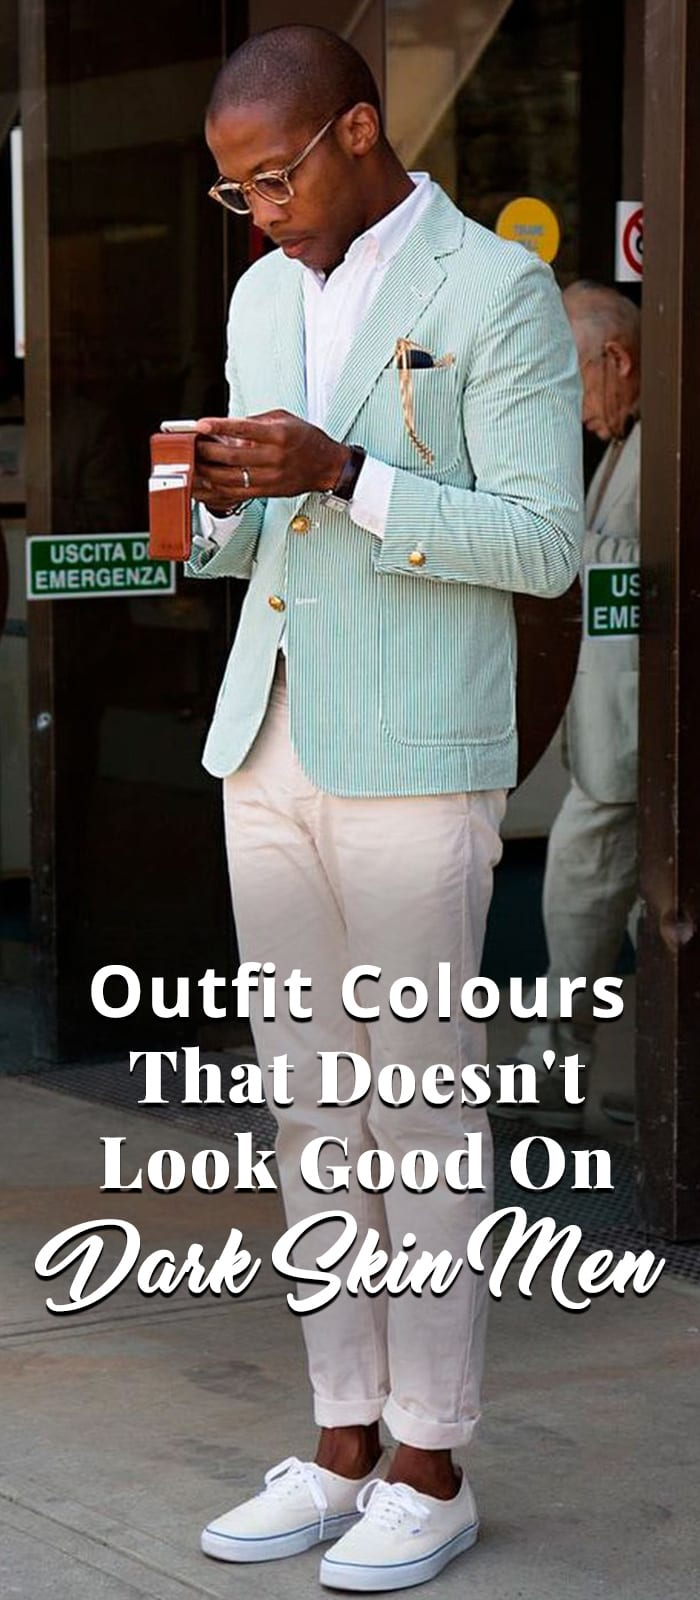 Outfit Colours That Doesn't Look Good On Dark Skin Men